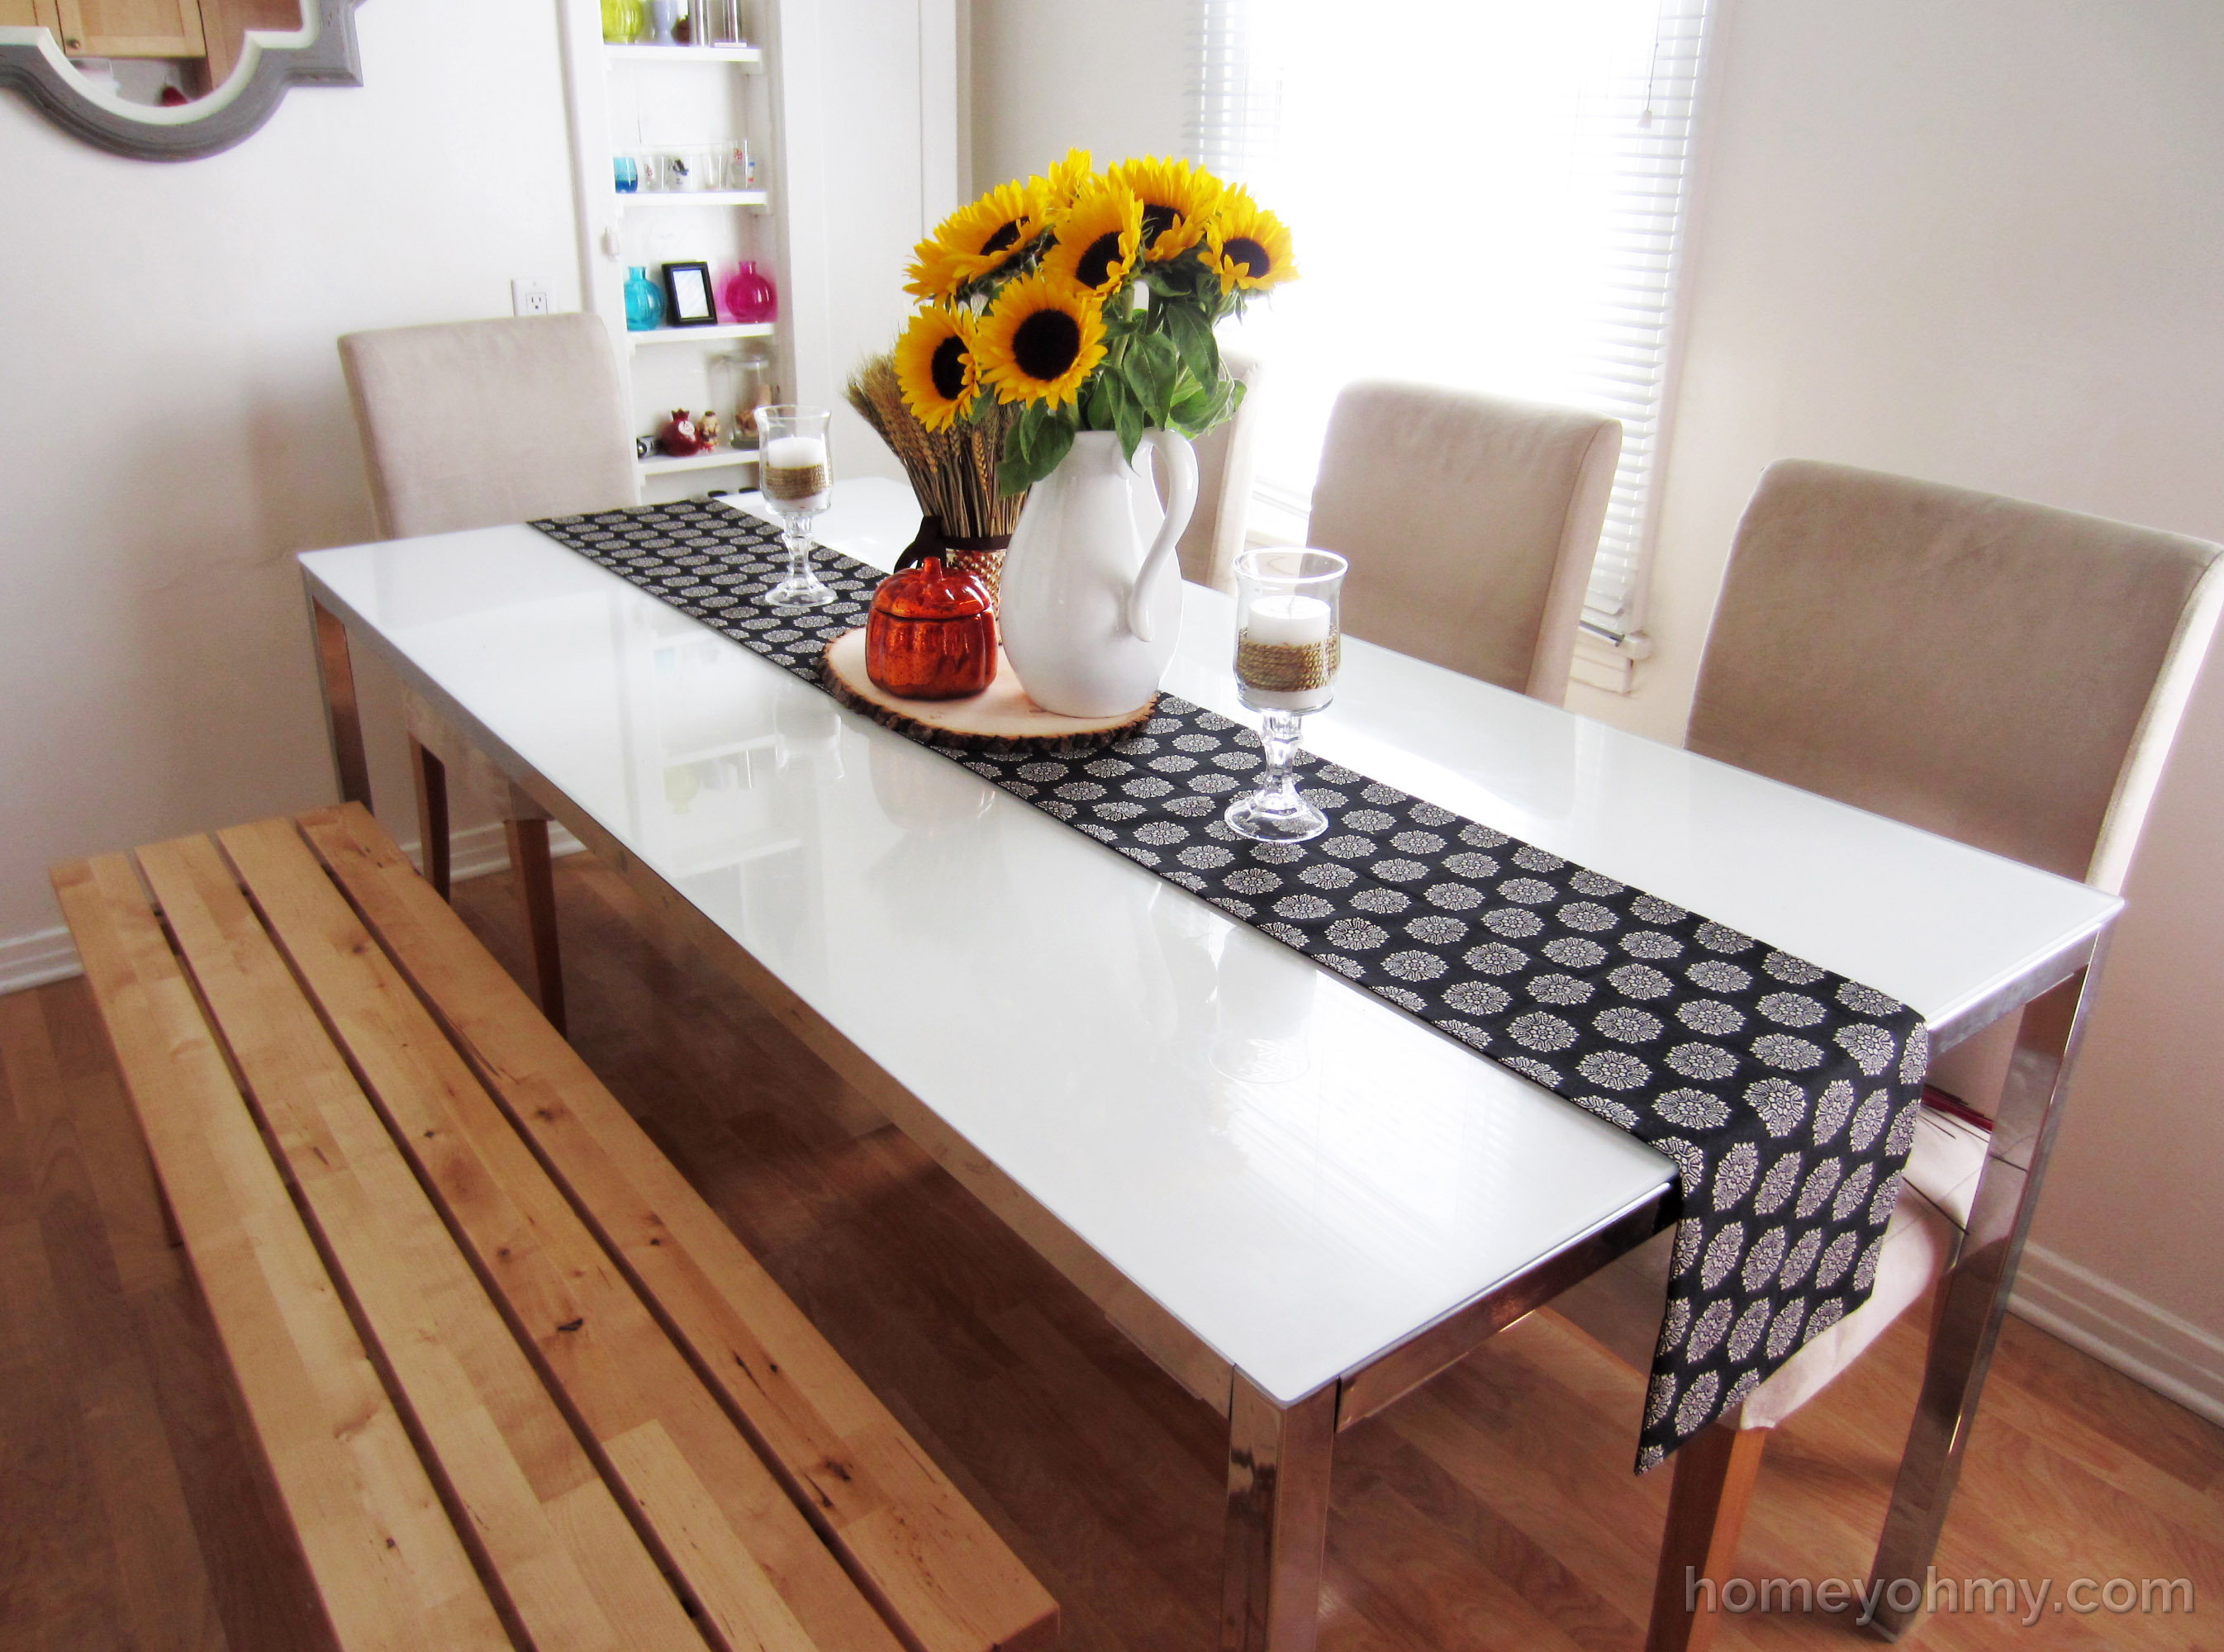 Superbe DIY No Sew Table Runner 4